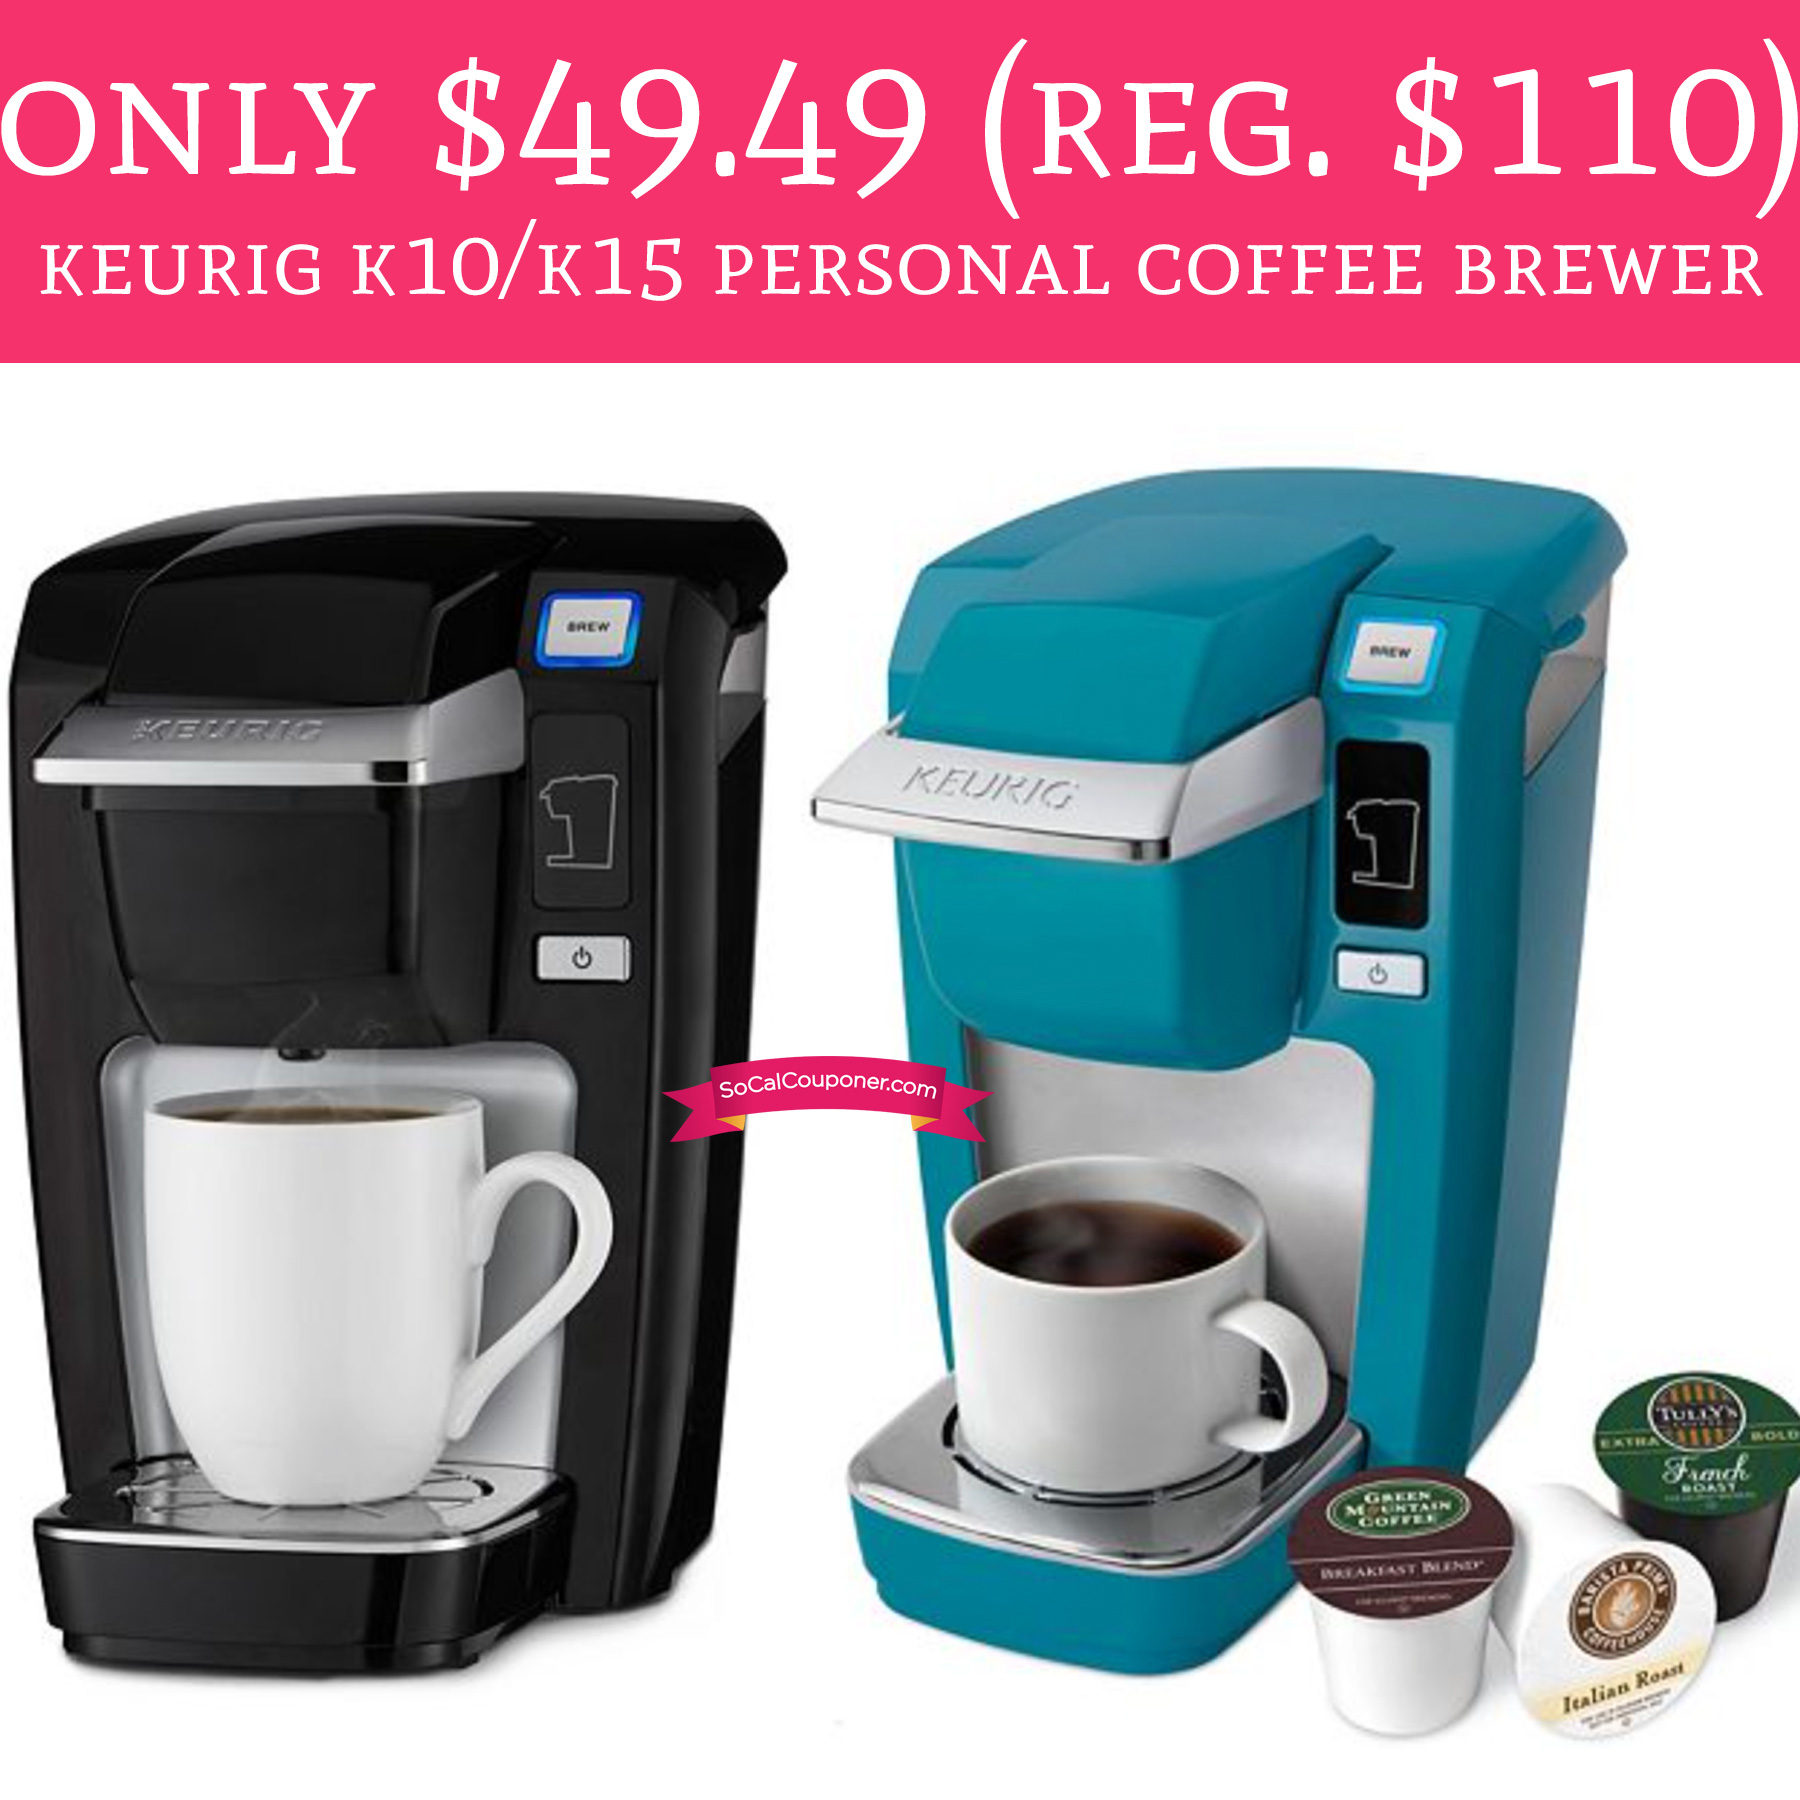 Keurig Coffee Maker Personal : Only USD 49.49 (Regular USD 110) Keurig K10/K15 Personal Coffee Brewer - Deal Hunting Babe